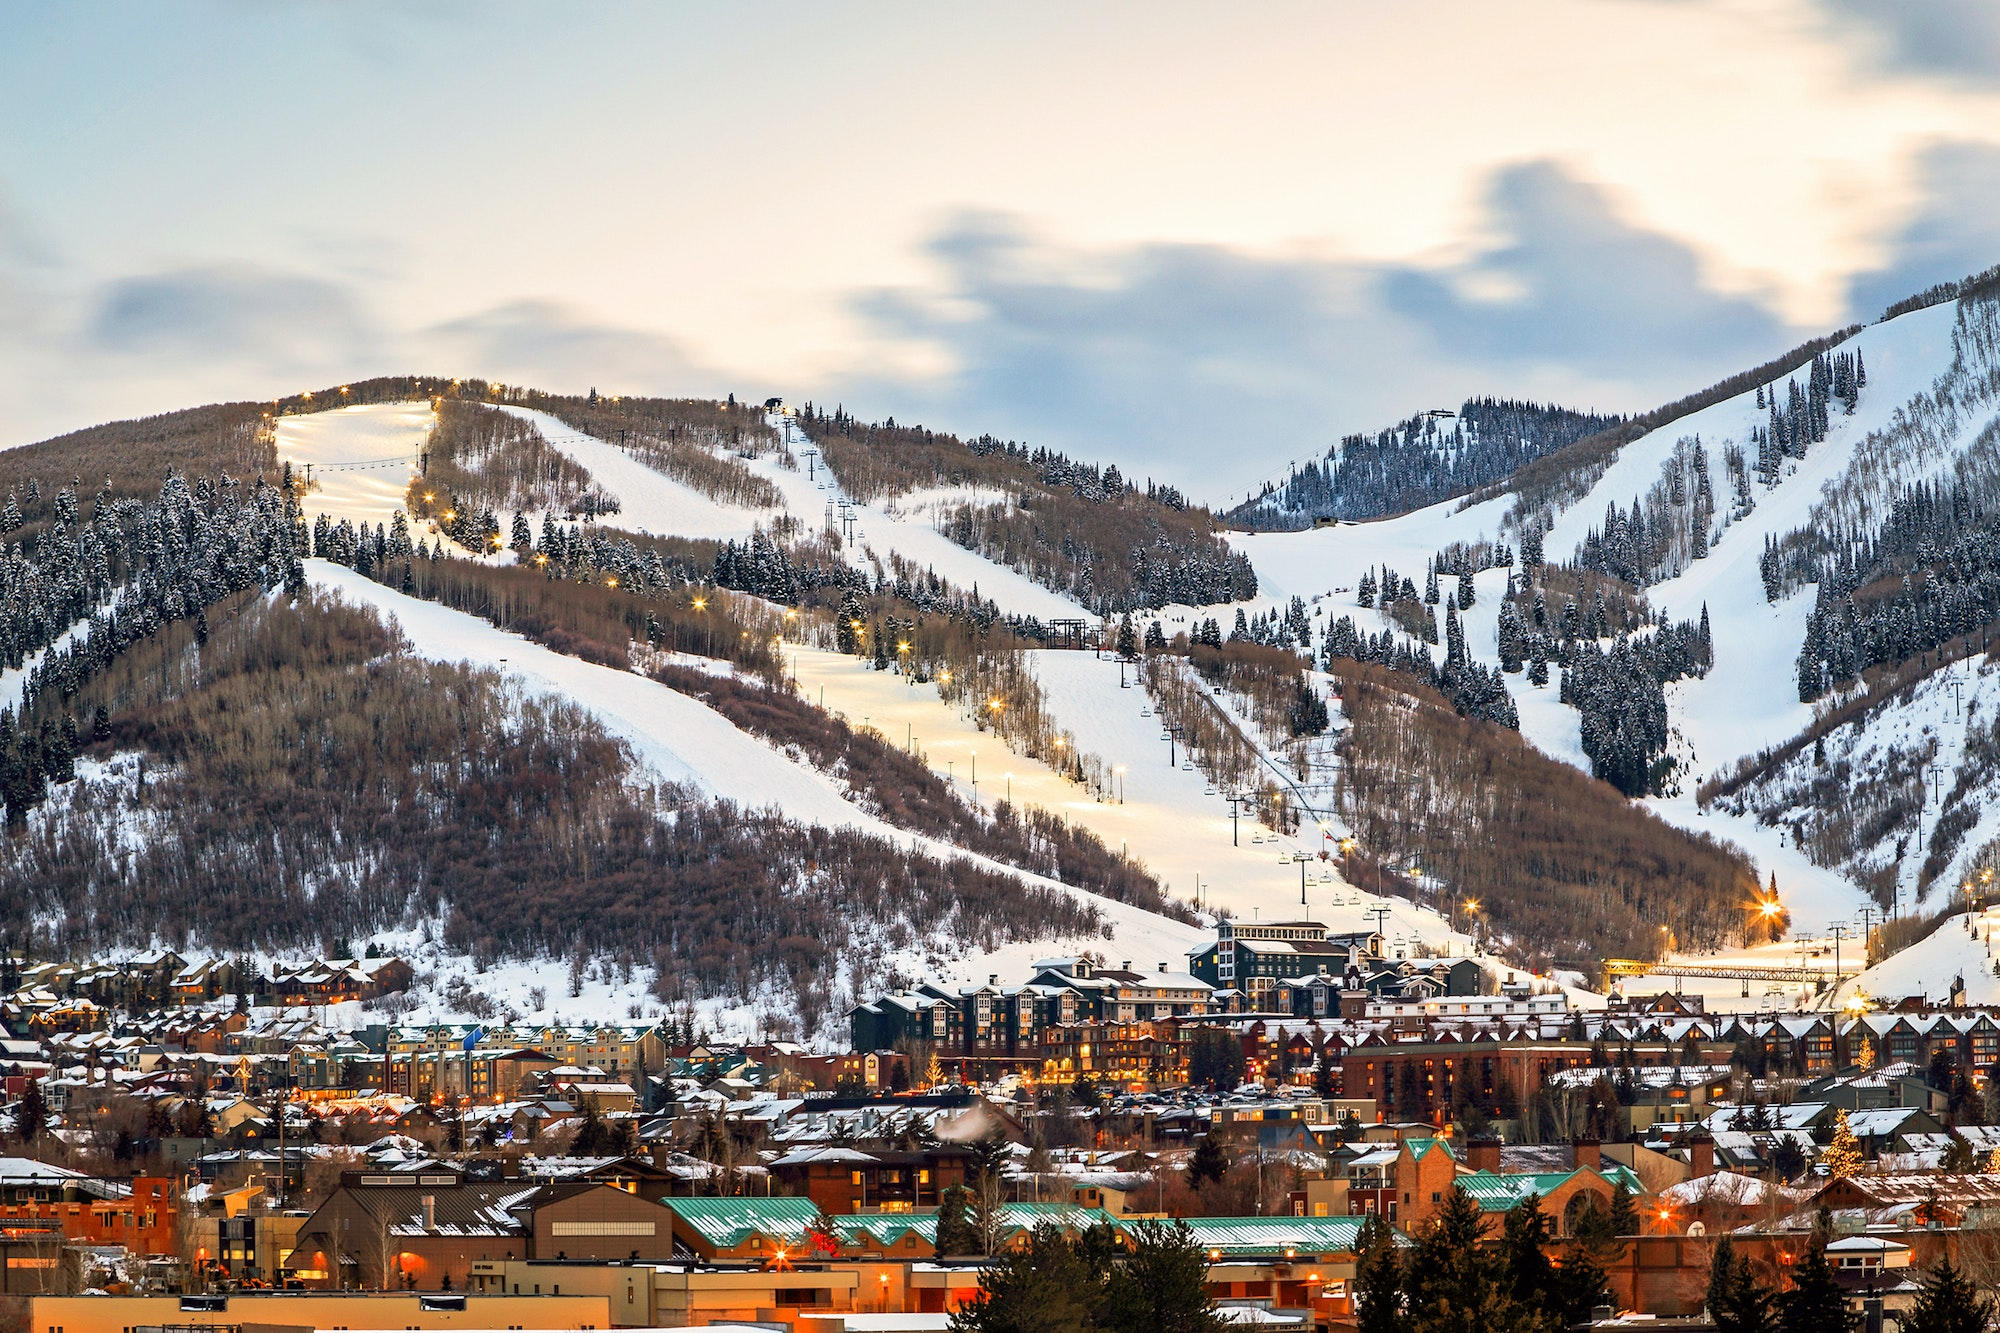 Park City lies east of Salt Lake City, Utah, in the Wasatch Range of the Rocky Mountains.